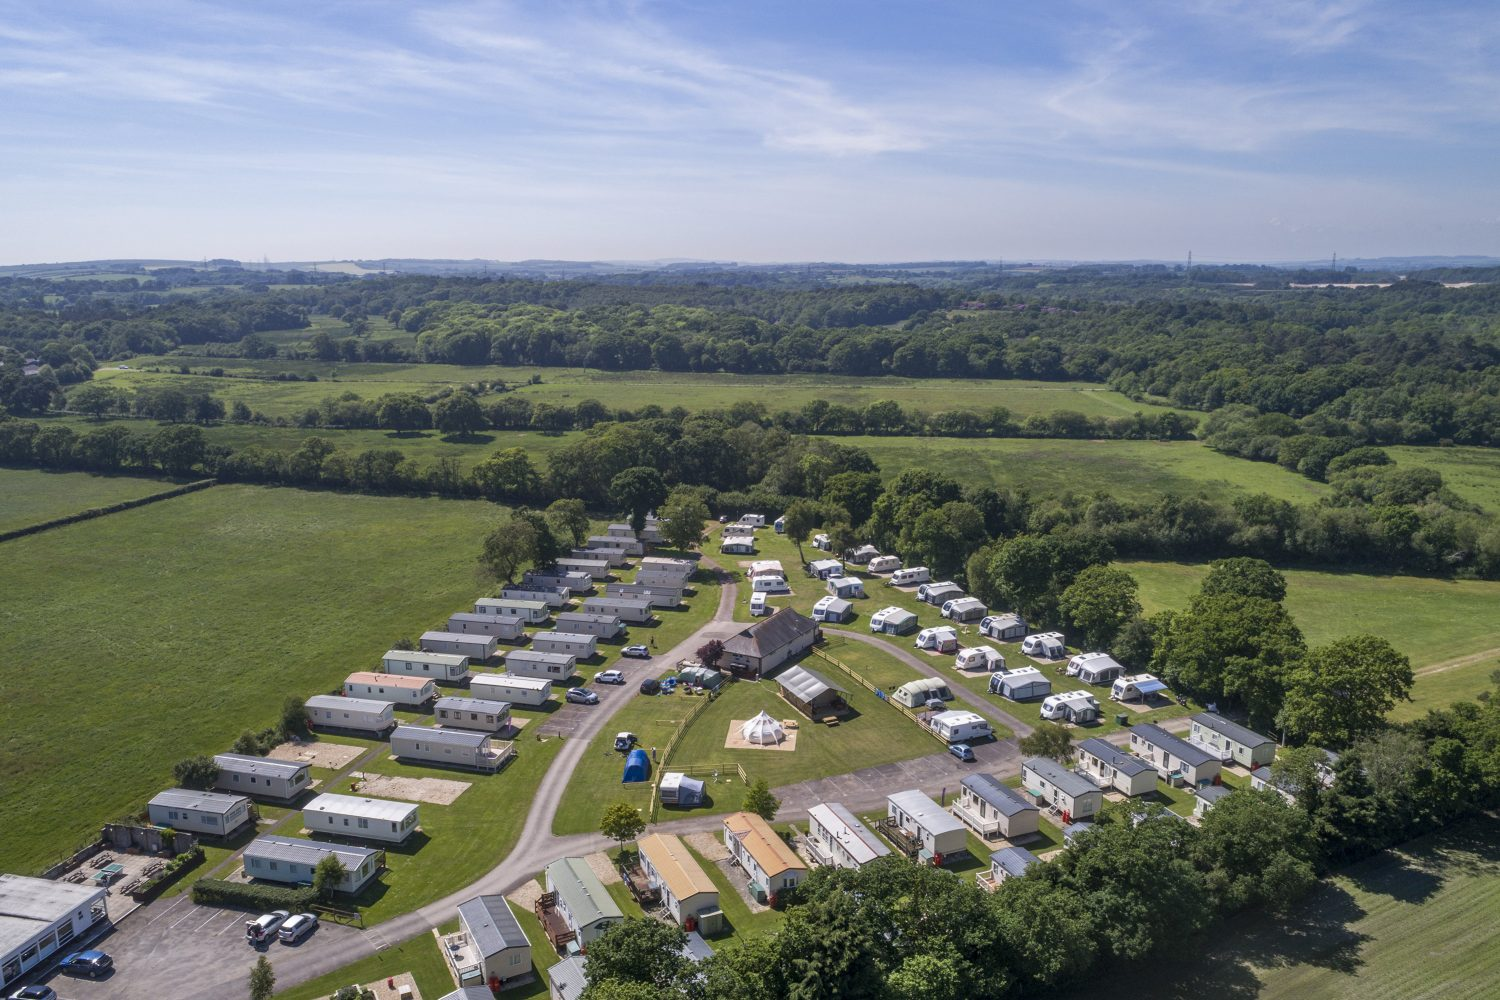 Aerial view of Sandyholme Holiday Park